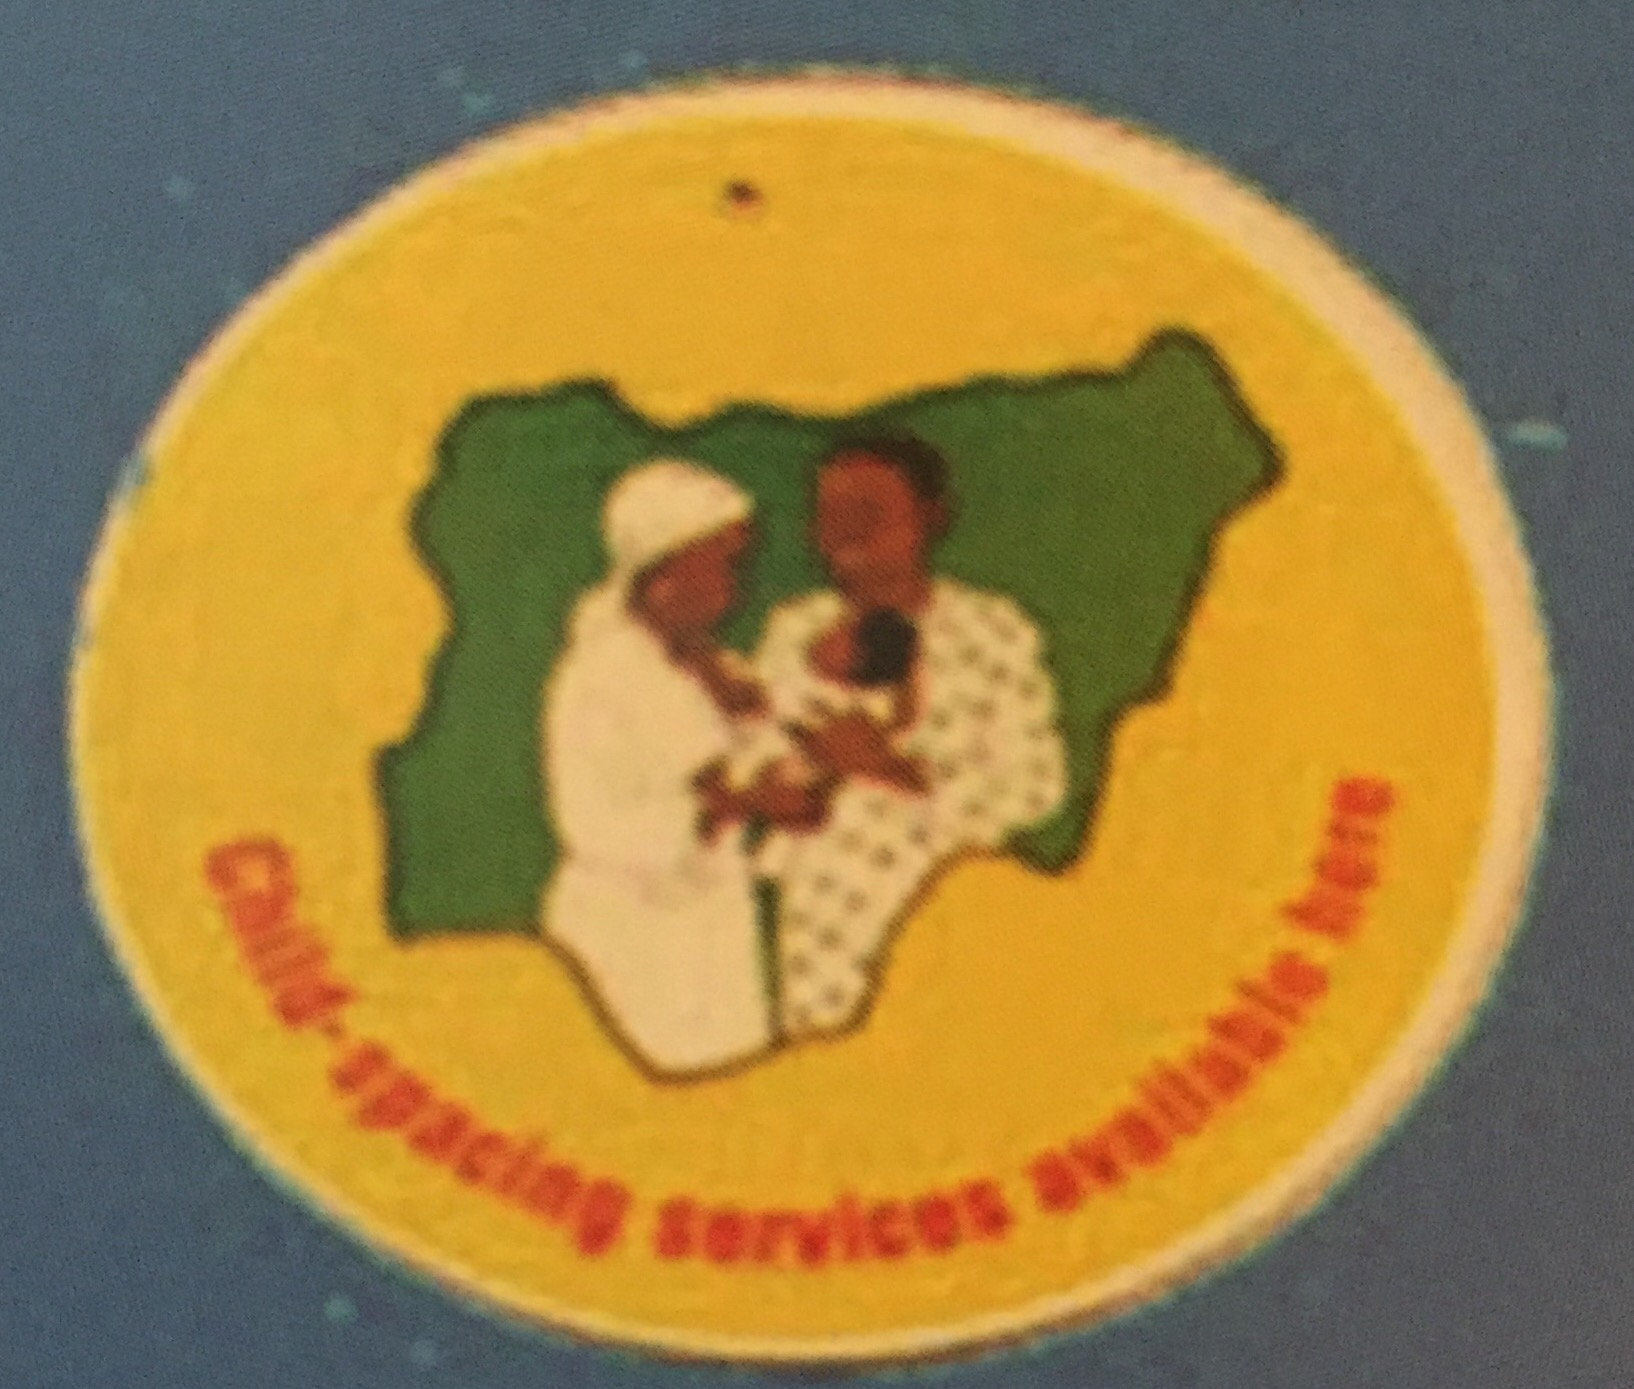 Nigeria Changes Family Planning Logo To Green Dot As A Symbol Of